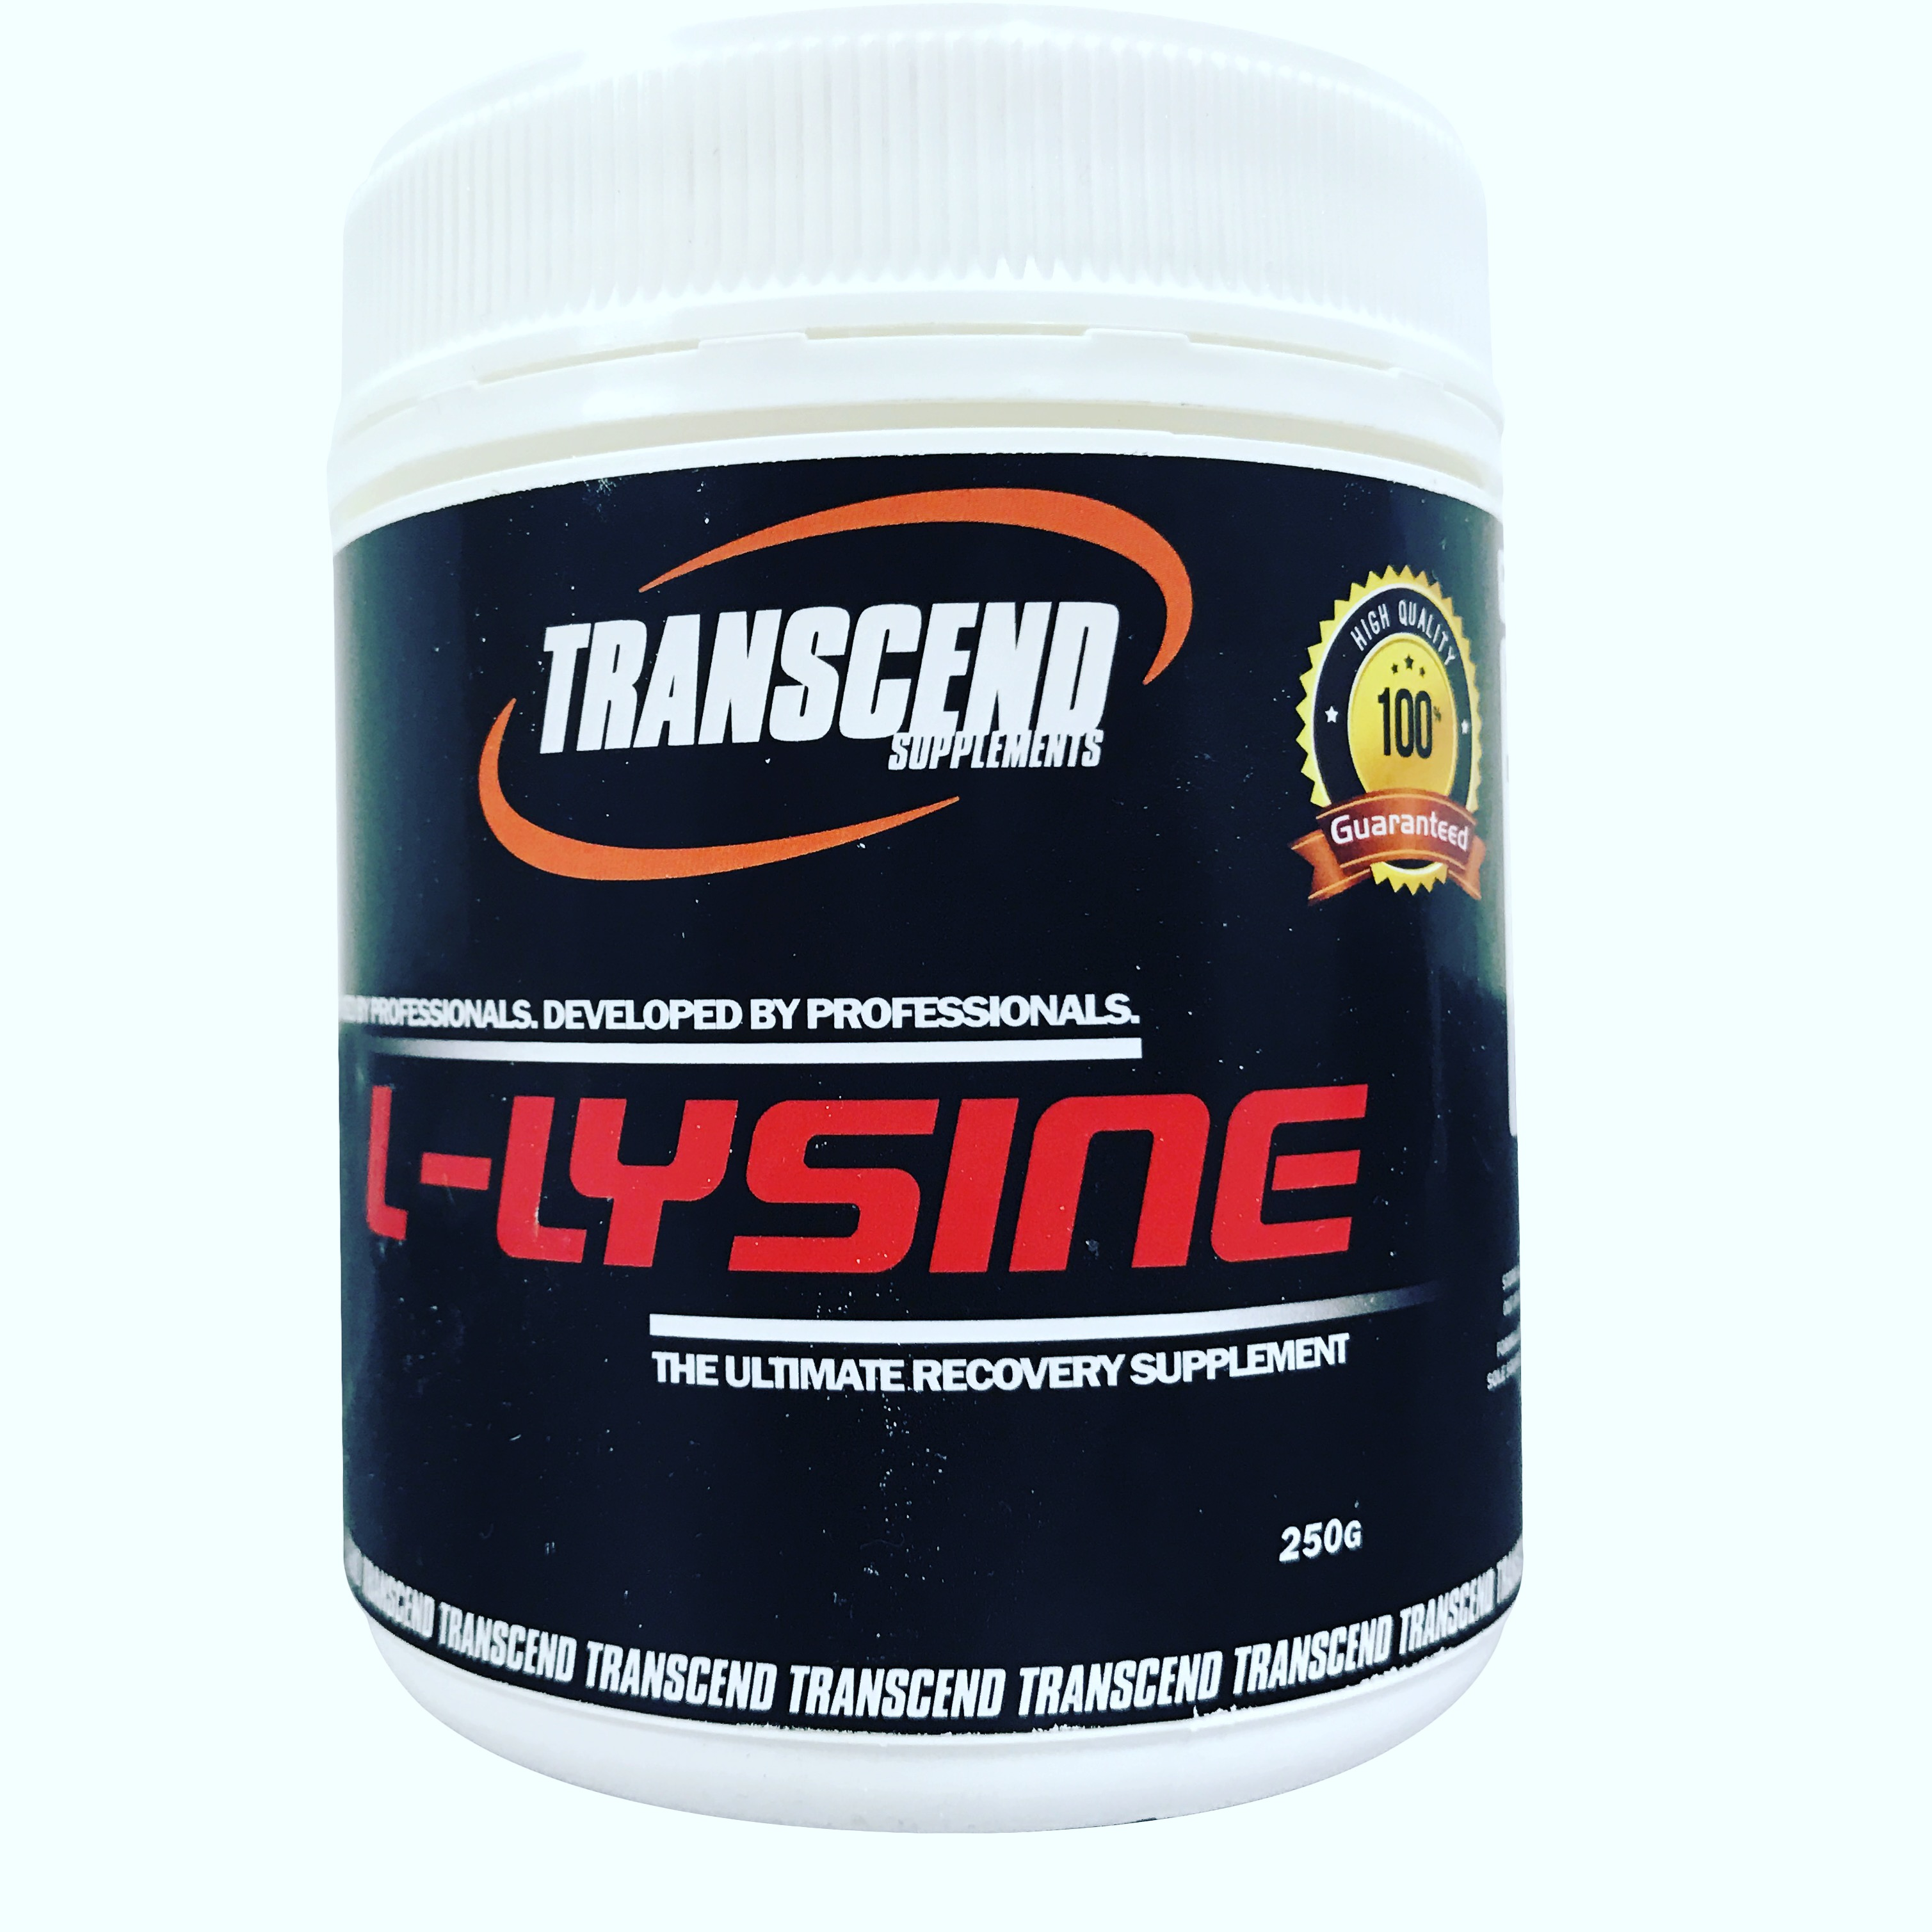 Transcend Supplements L-Lysine 250g